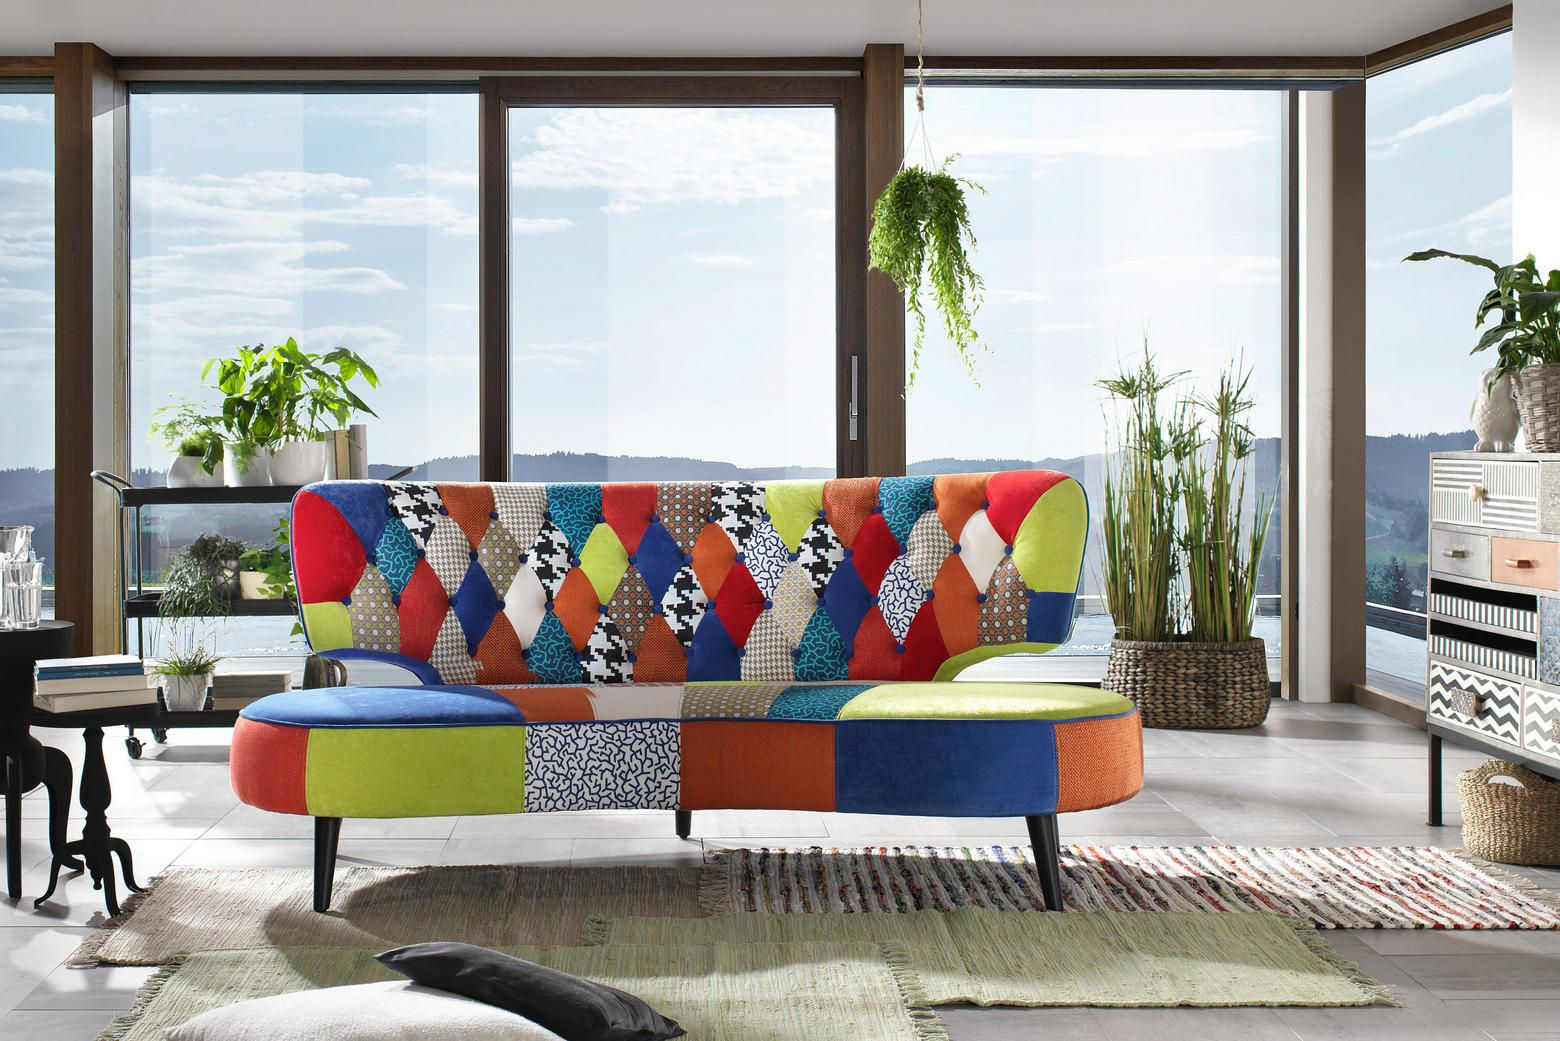 Sofa In Holz Textil Multicolor In 2019 Haus Sofa Couch Und